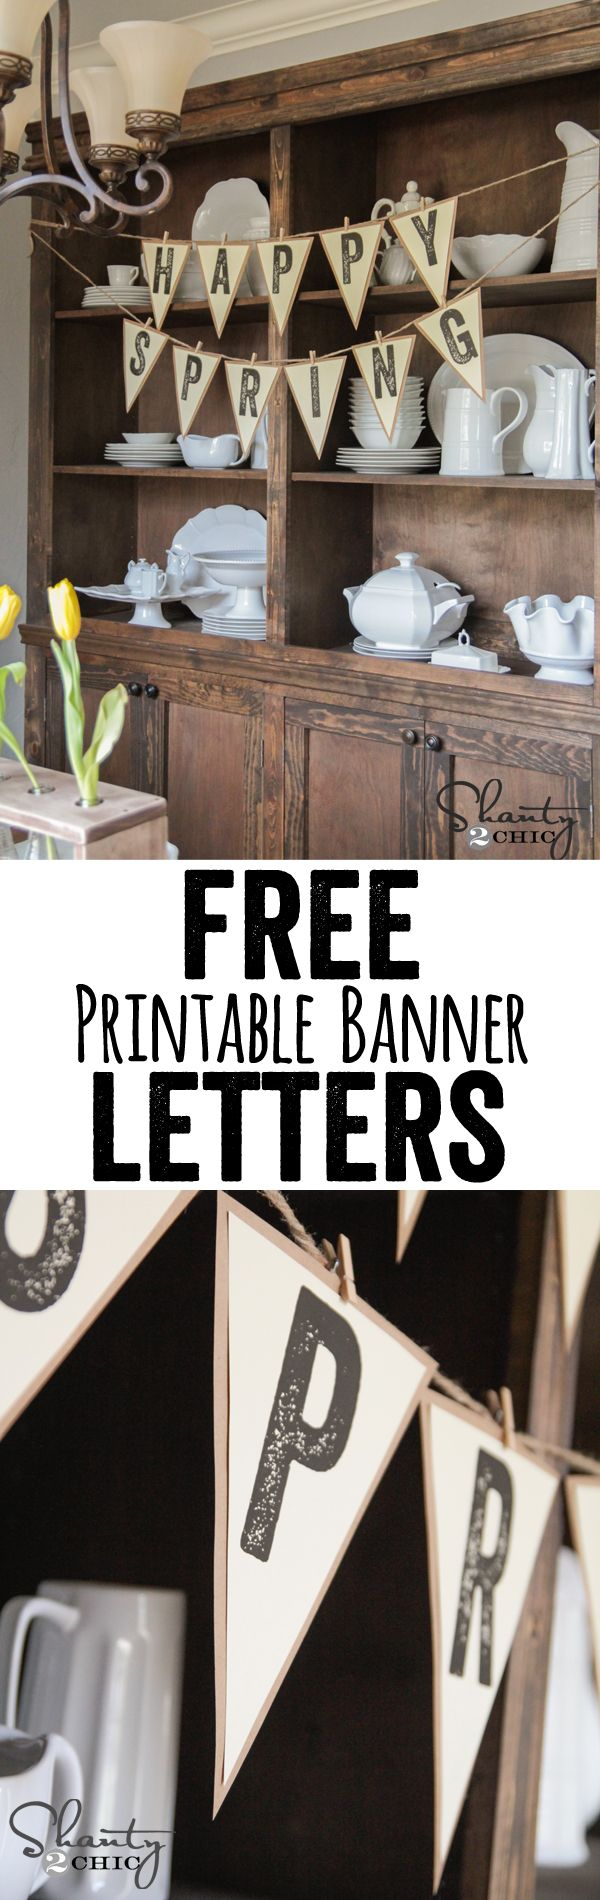 best 25+ banner printing ideas on pinterest  printable banner